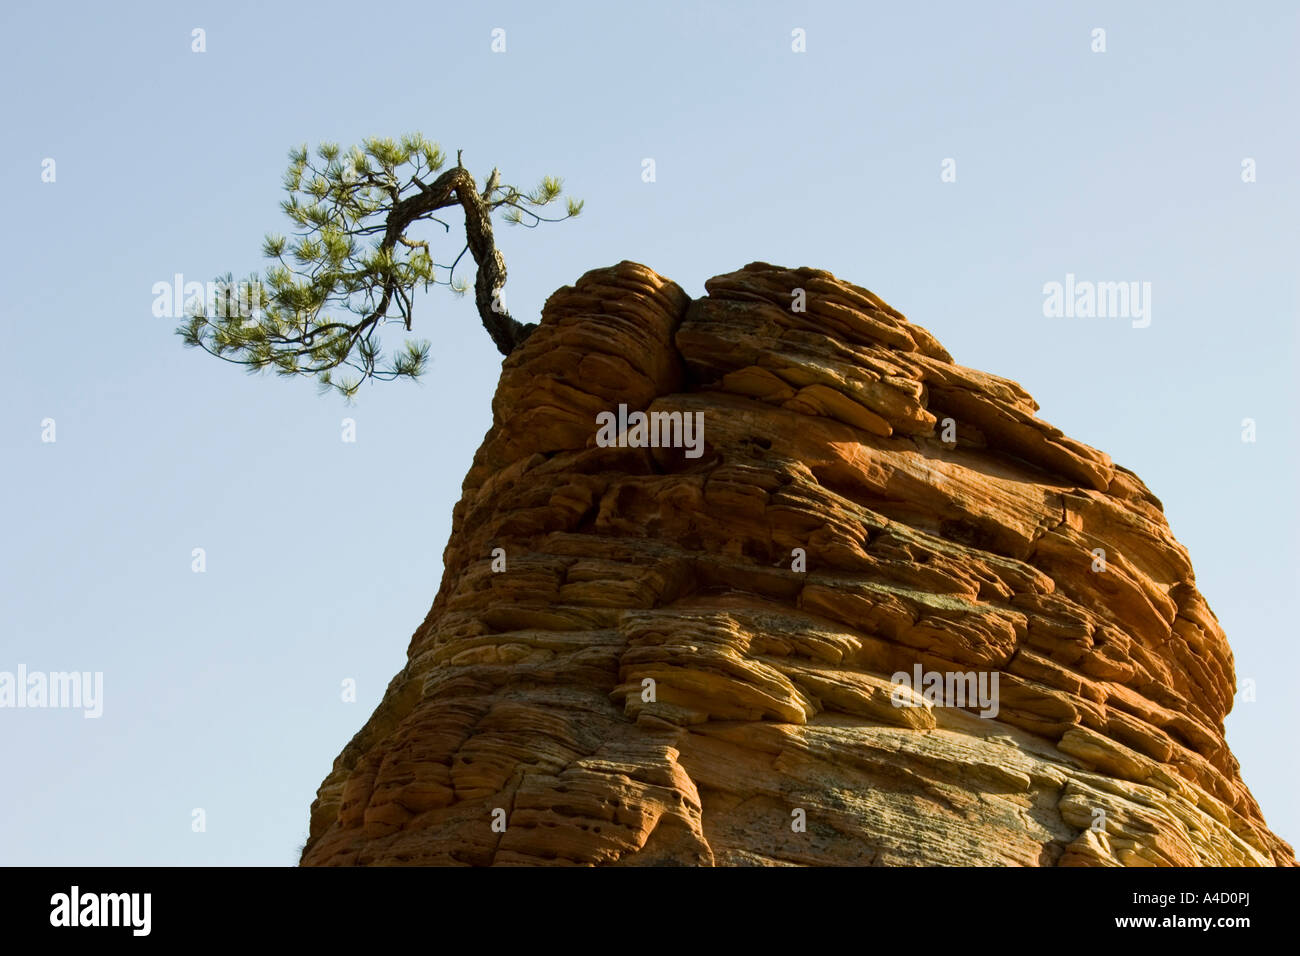 Pinyon Pine (Pinus edulis), solitary pine tree on top of an isolated sandstone rock - Stock Image